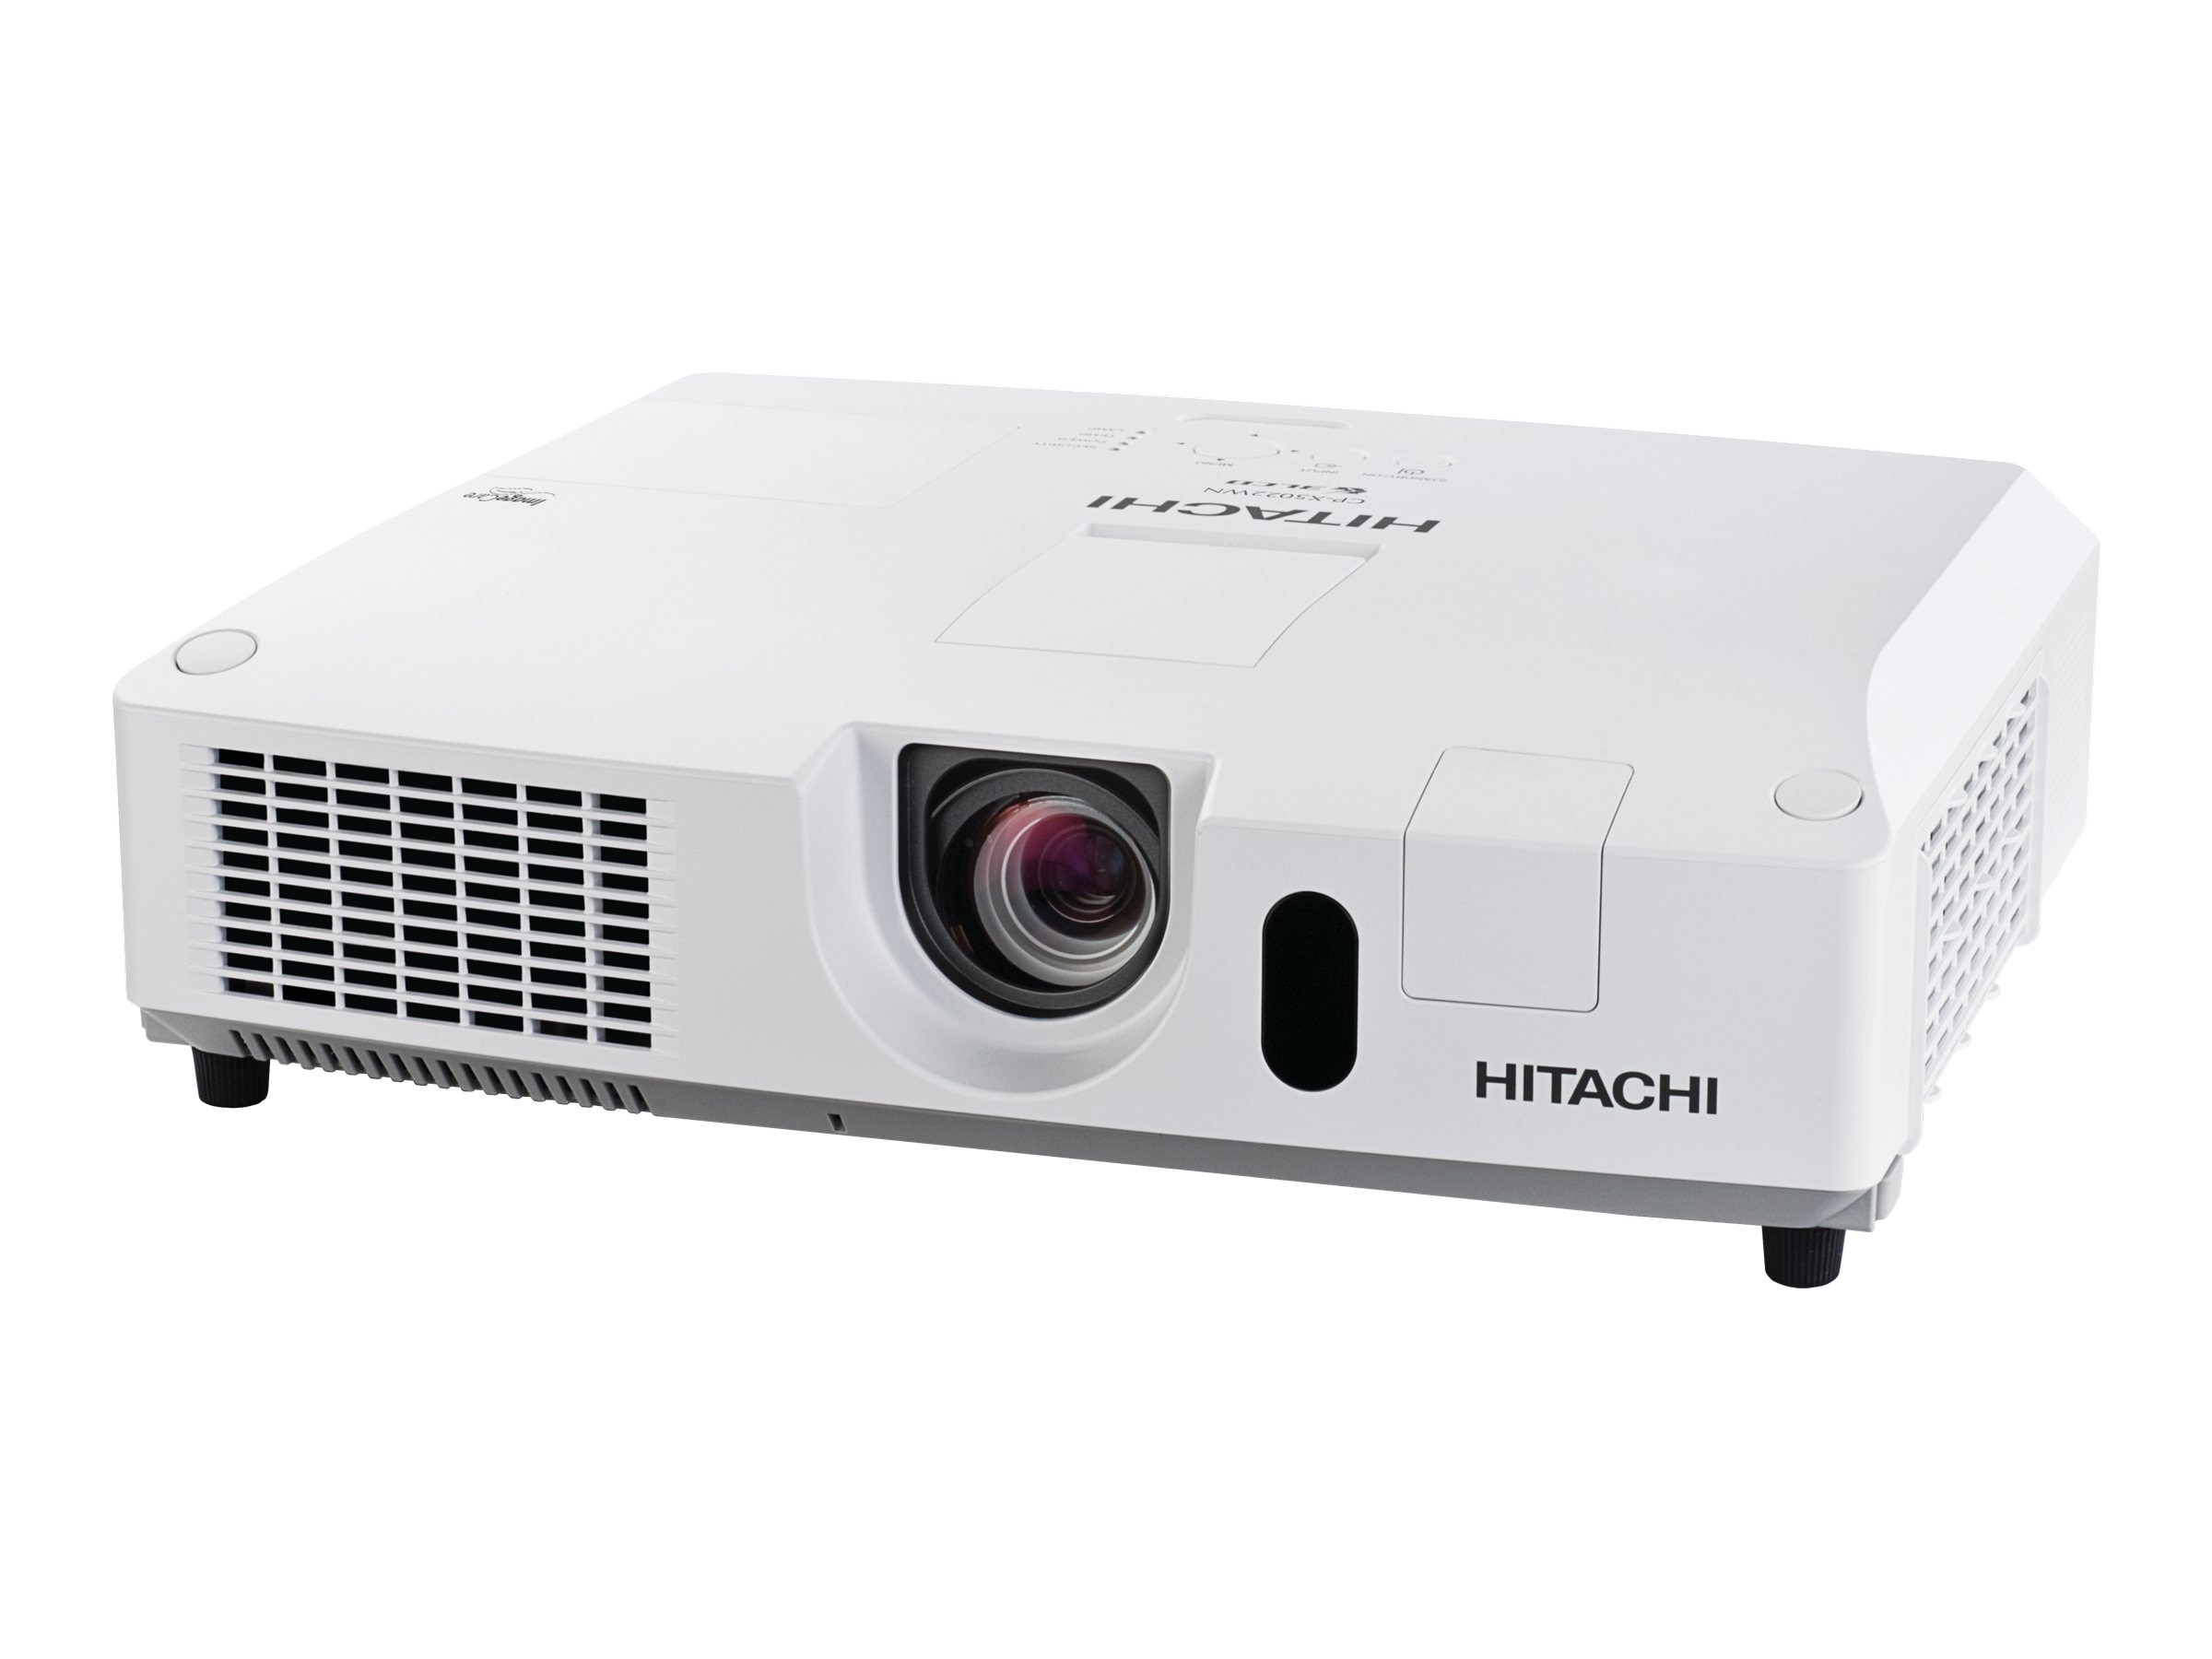 Hitachi CP-X5022WN Image 1